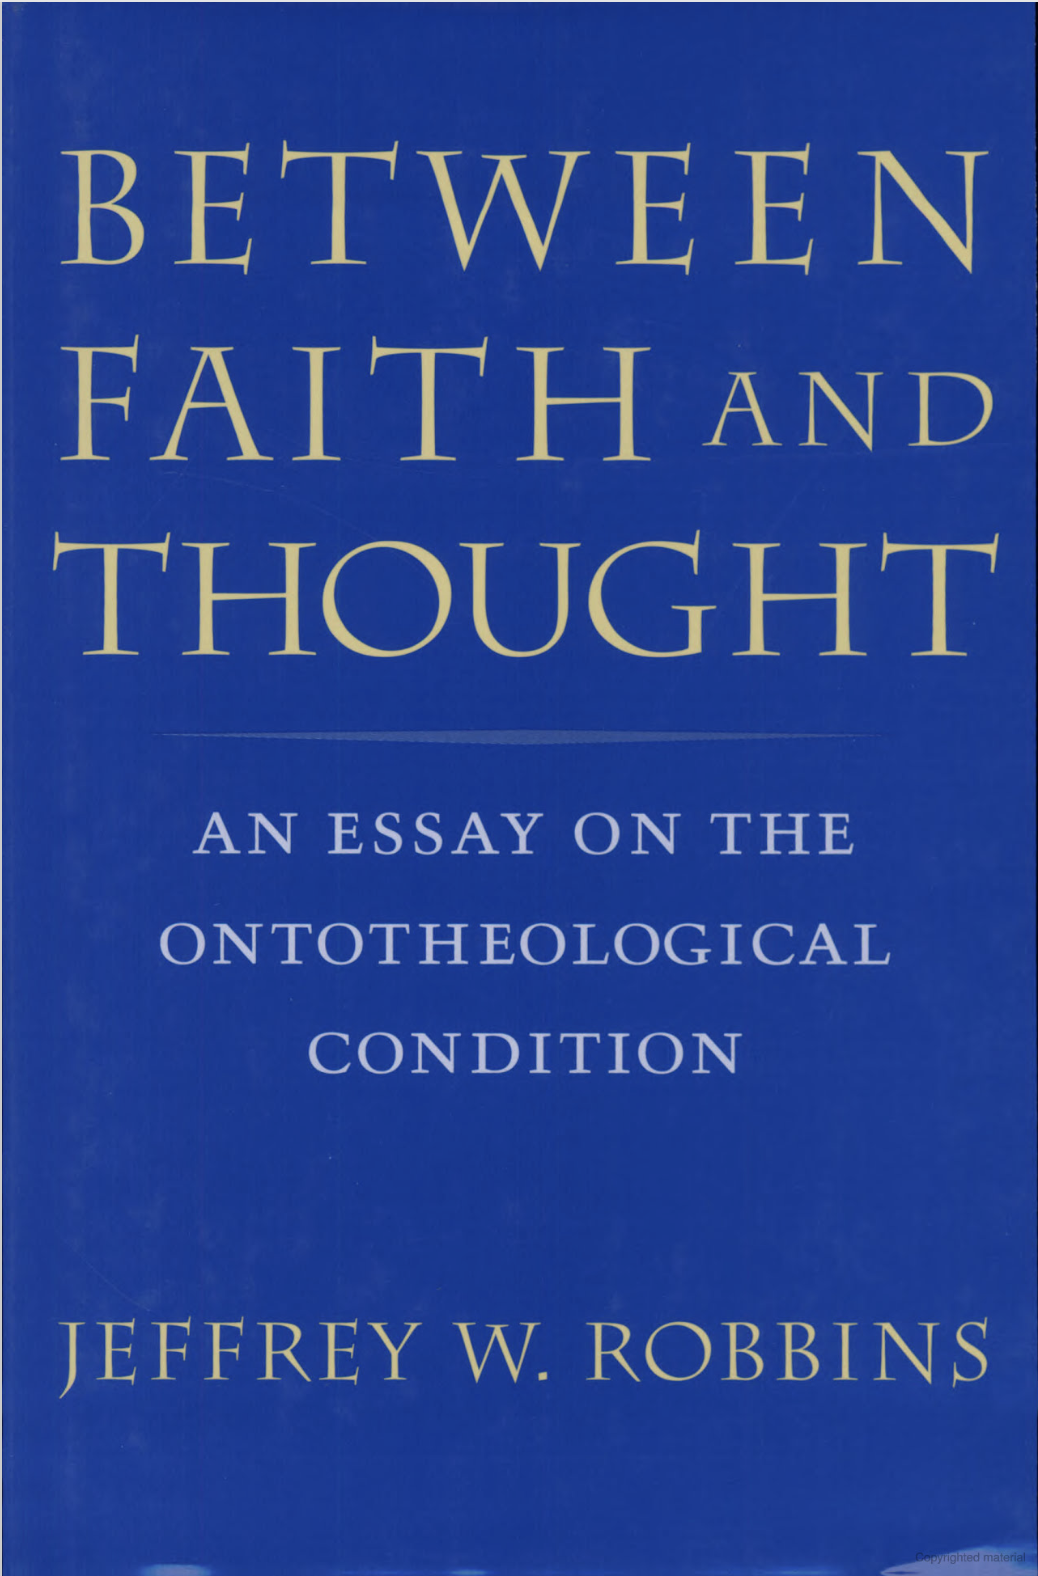 Between Faith and Thought: An Essay on the Ontotheological Condition